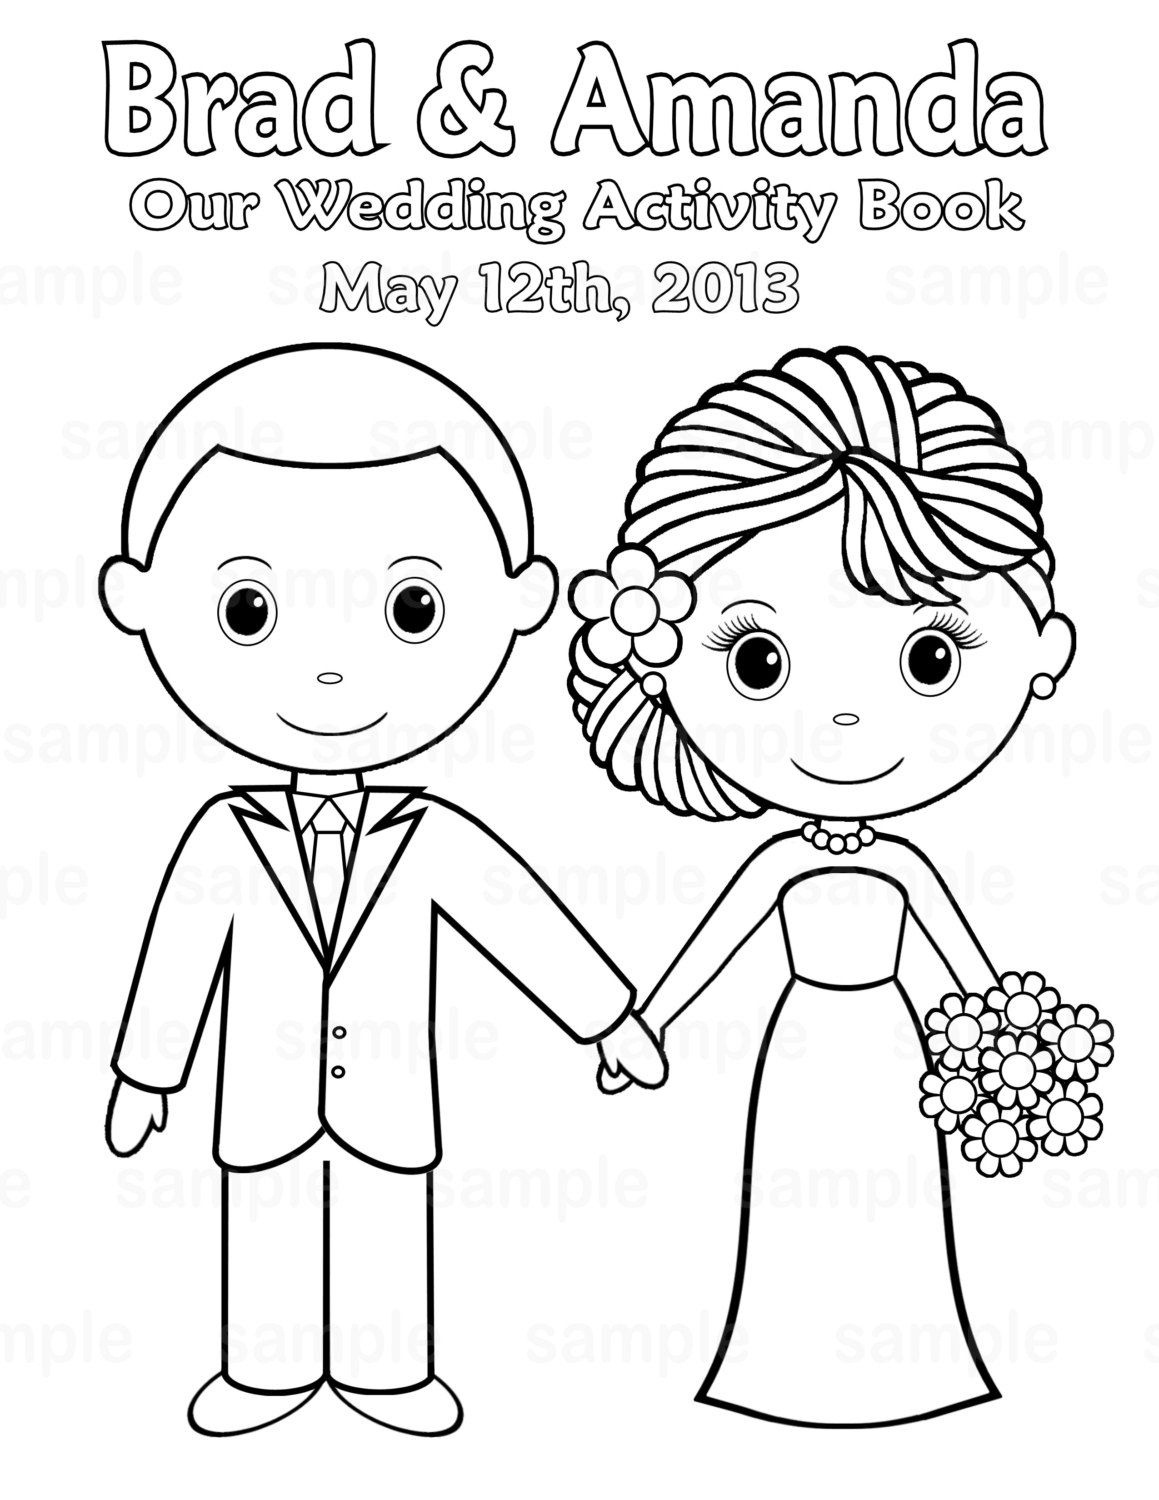 Free Printable Coloring Pictures Wedding   Printable Personalized - Free Printable Personalized Wedding Coloring Book